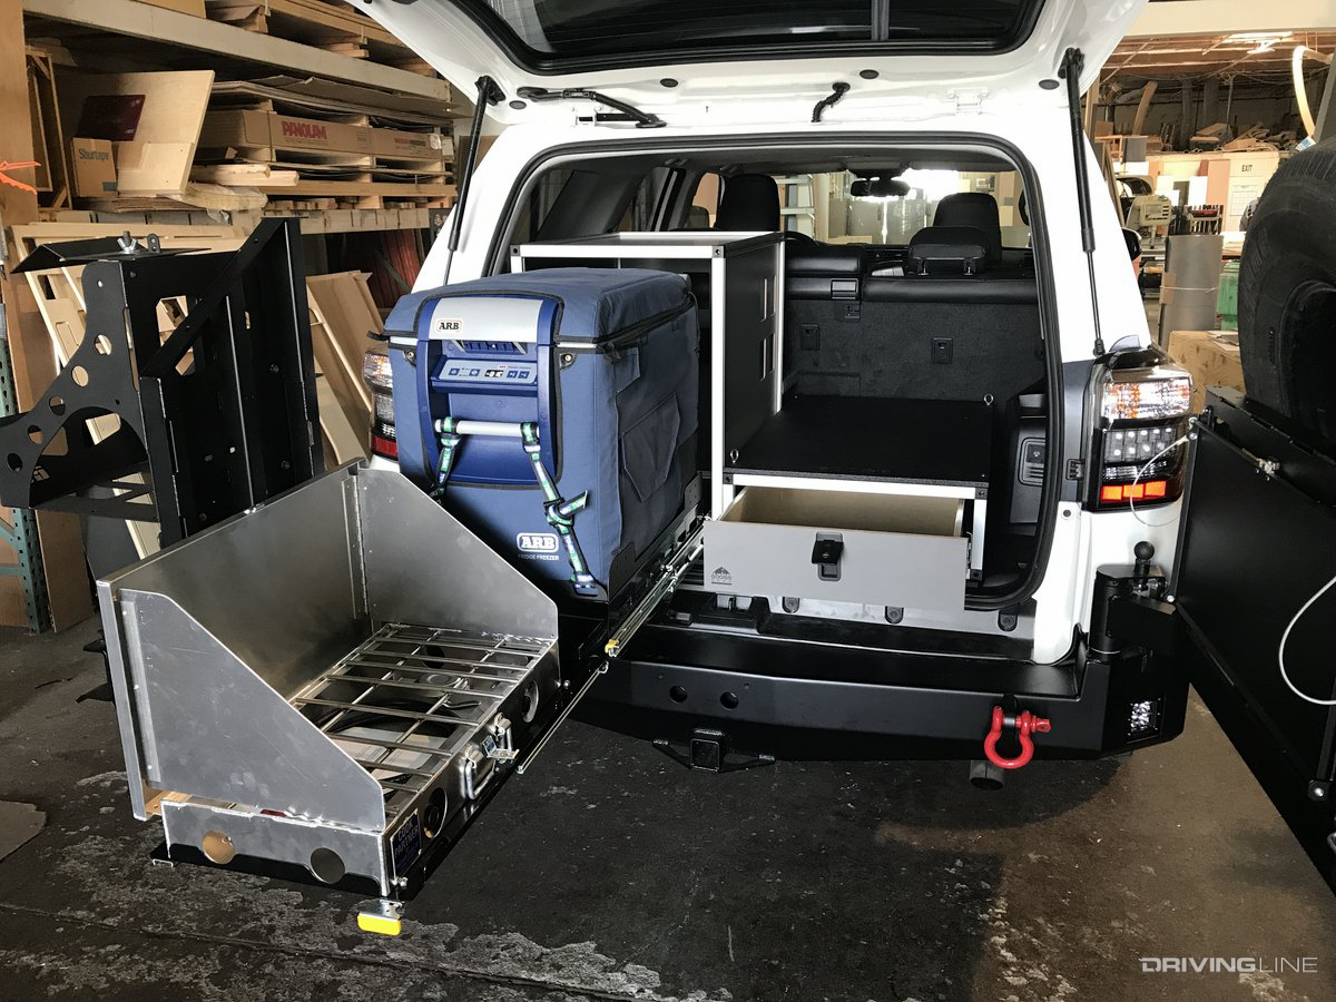 Overlanding Storage Solutions Should You Install A Drawer Or Sleeping Platform Drivingline